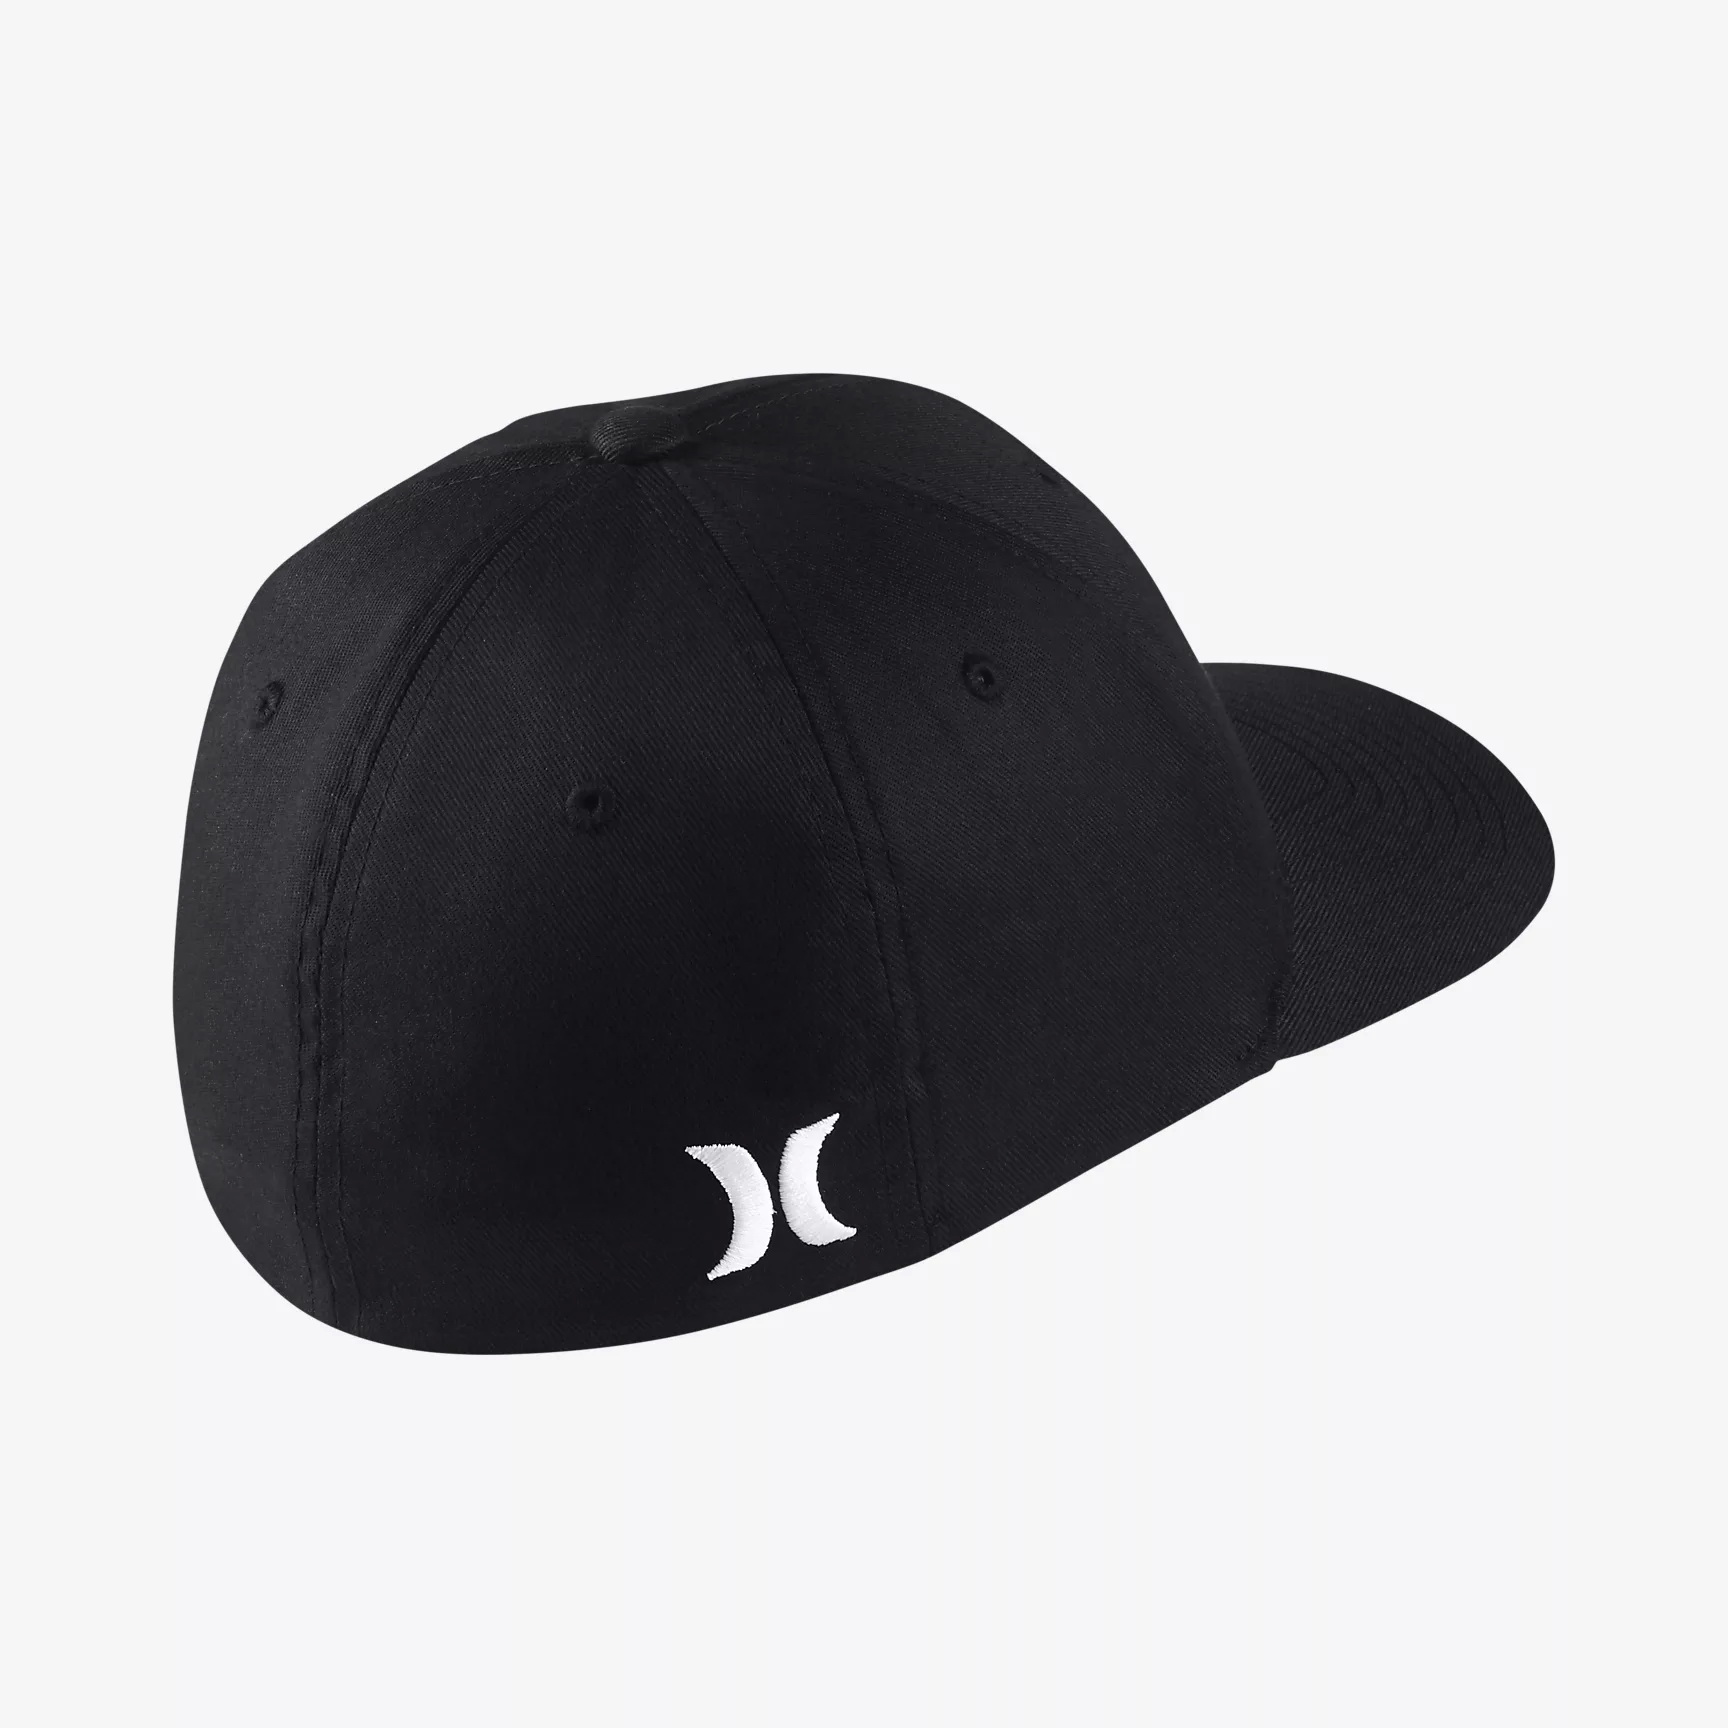 adf1da1309e87 Gorras  Hurley  Gorra Hurley Corp Fitted - Drifters